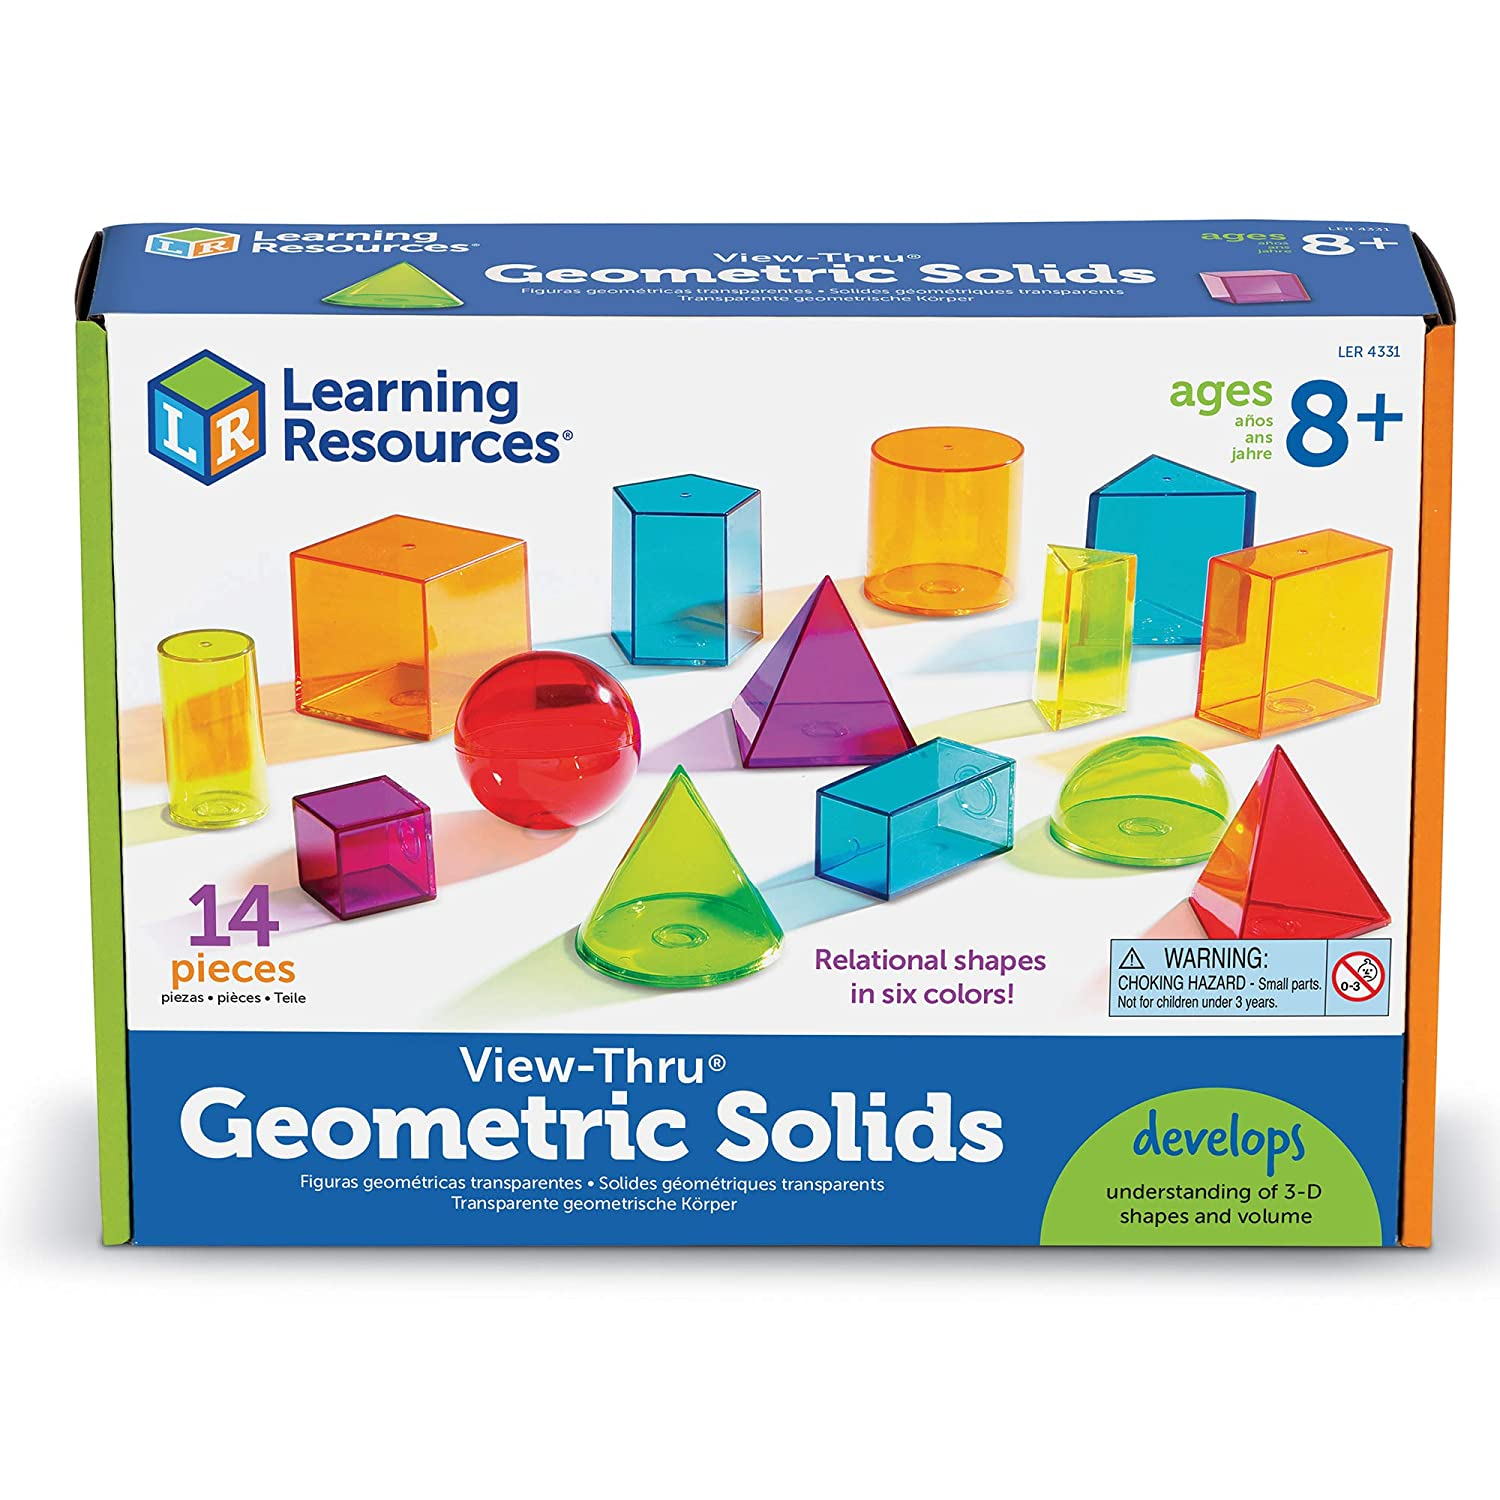 14 Pieces Learning Resources View-Thru Geometric Solids